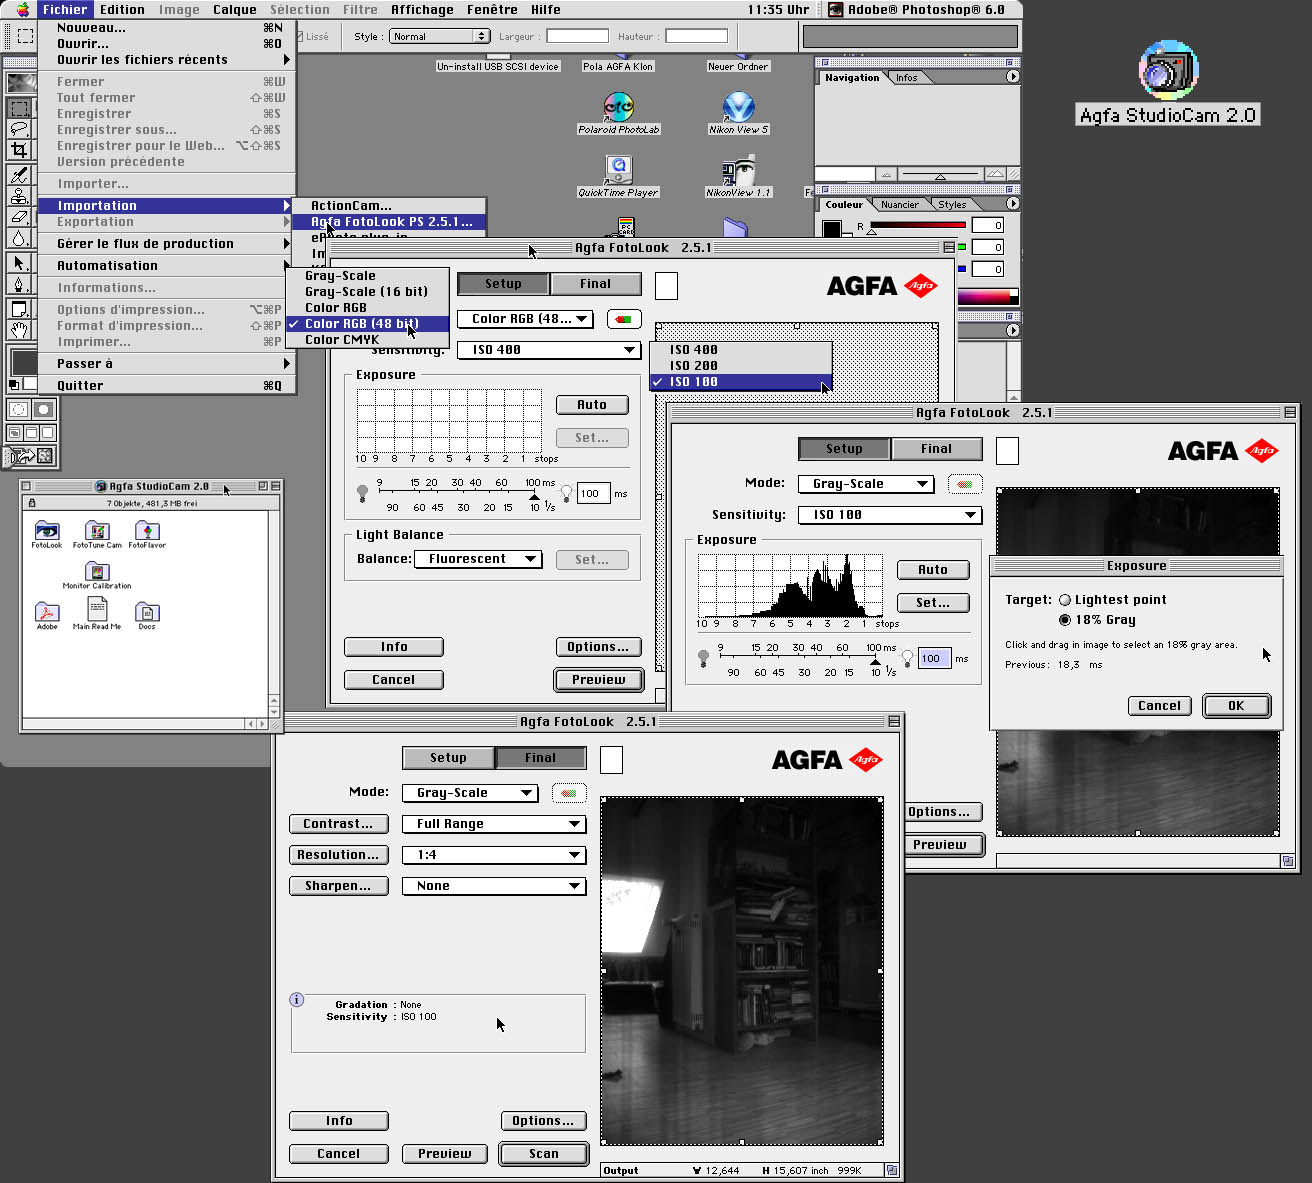 AGFA STUDIOCAM FOTOLOOK DRIVERS FOR WINDOWS